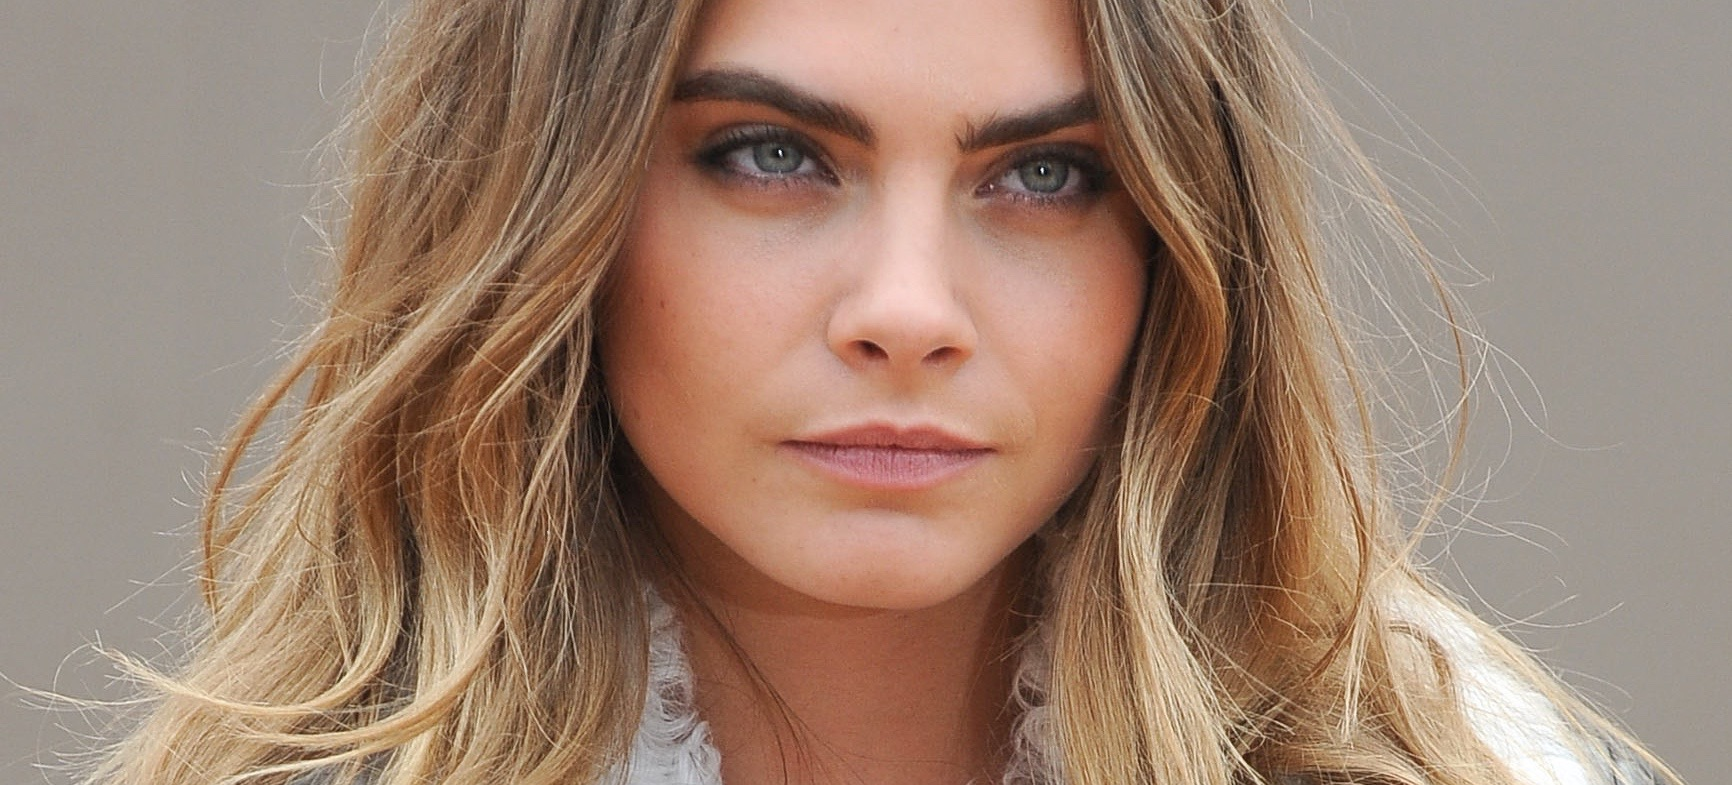 How To Choose The Right Brow Shade For Your Coloring